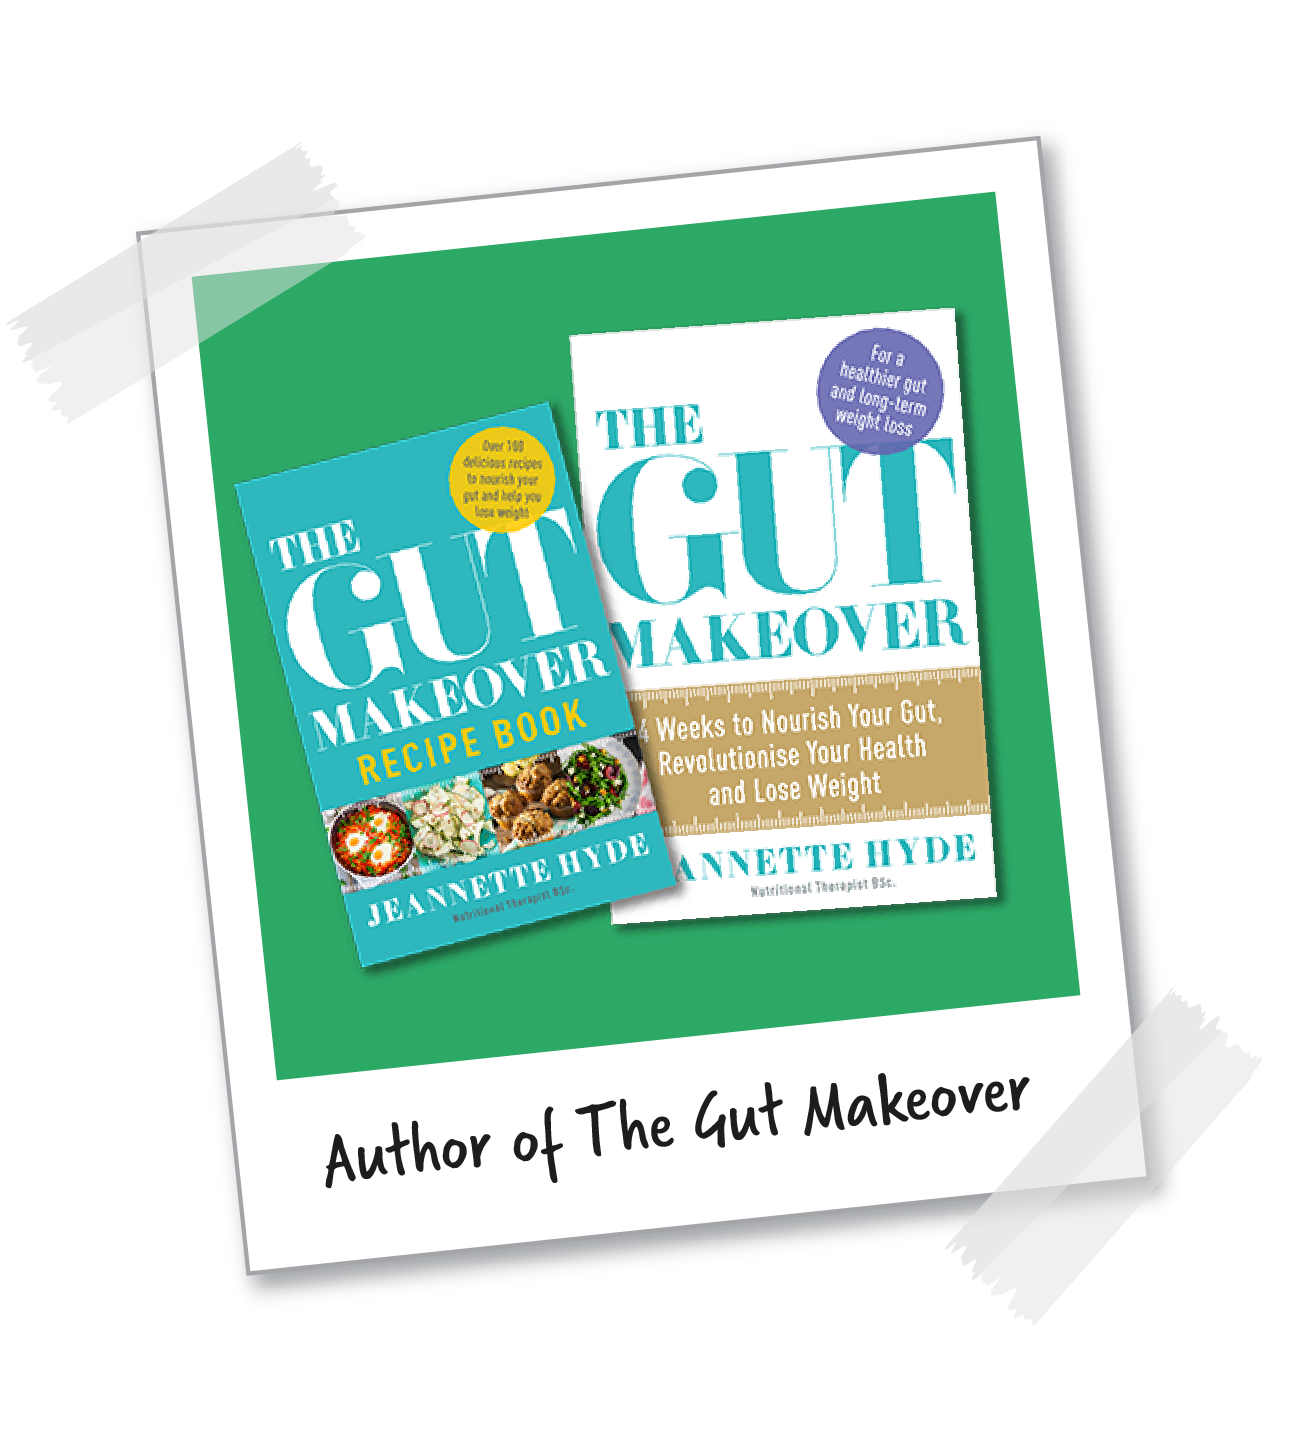 Author of The Gut Makeover